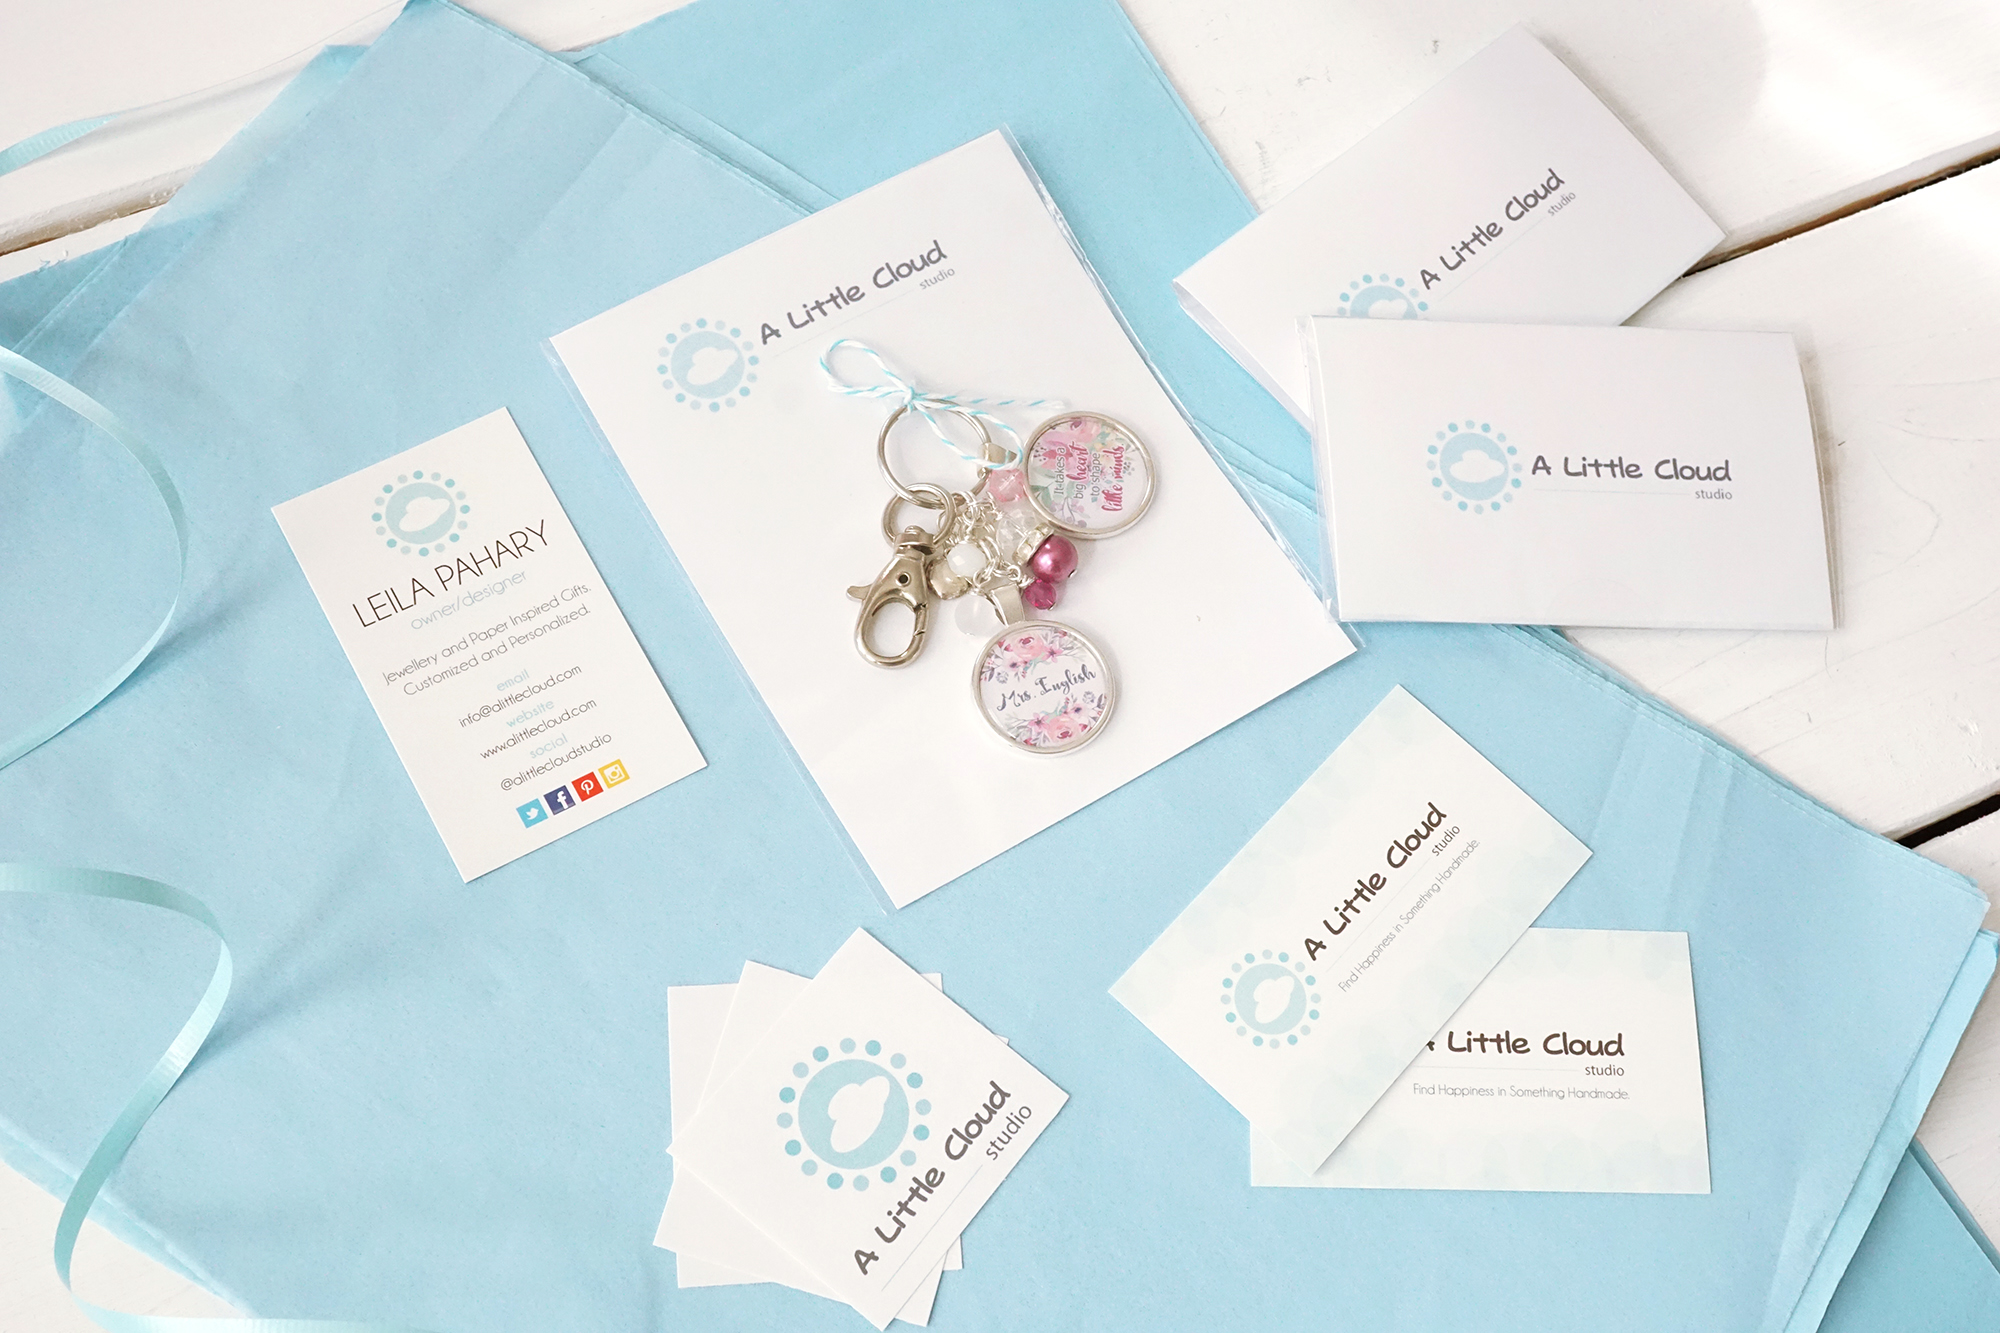 Packaging photo for A Little Cloud Studio